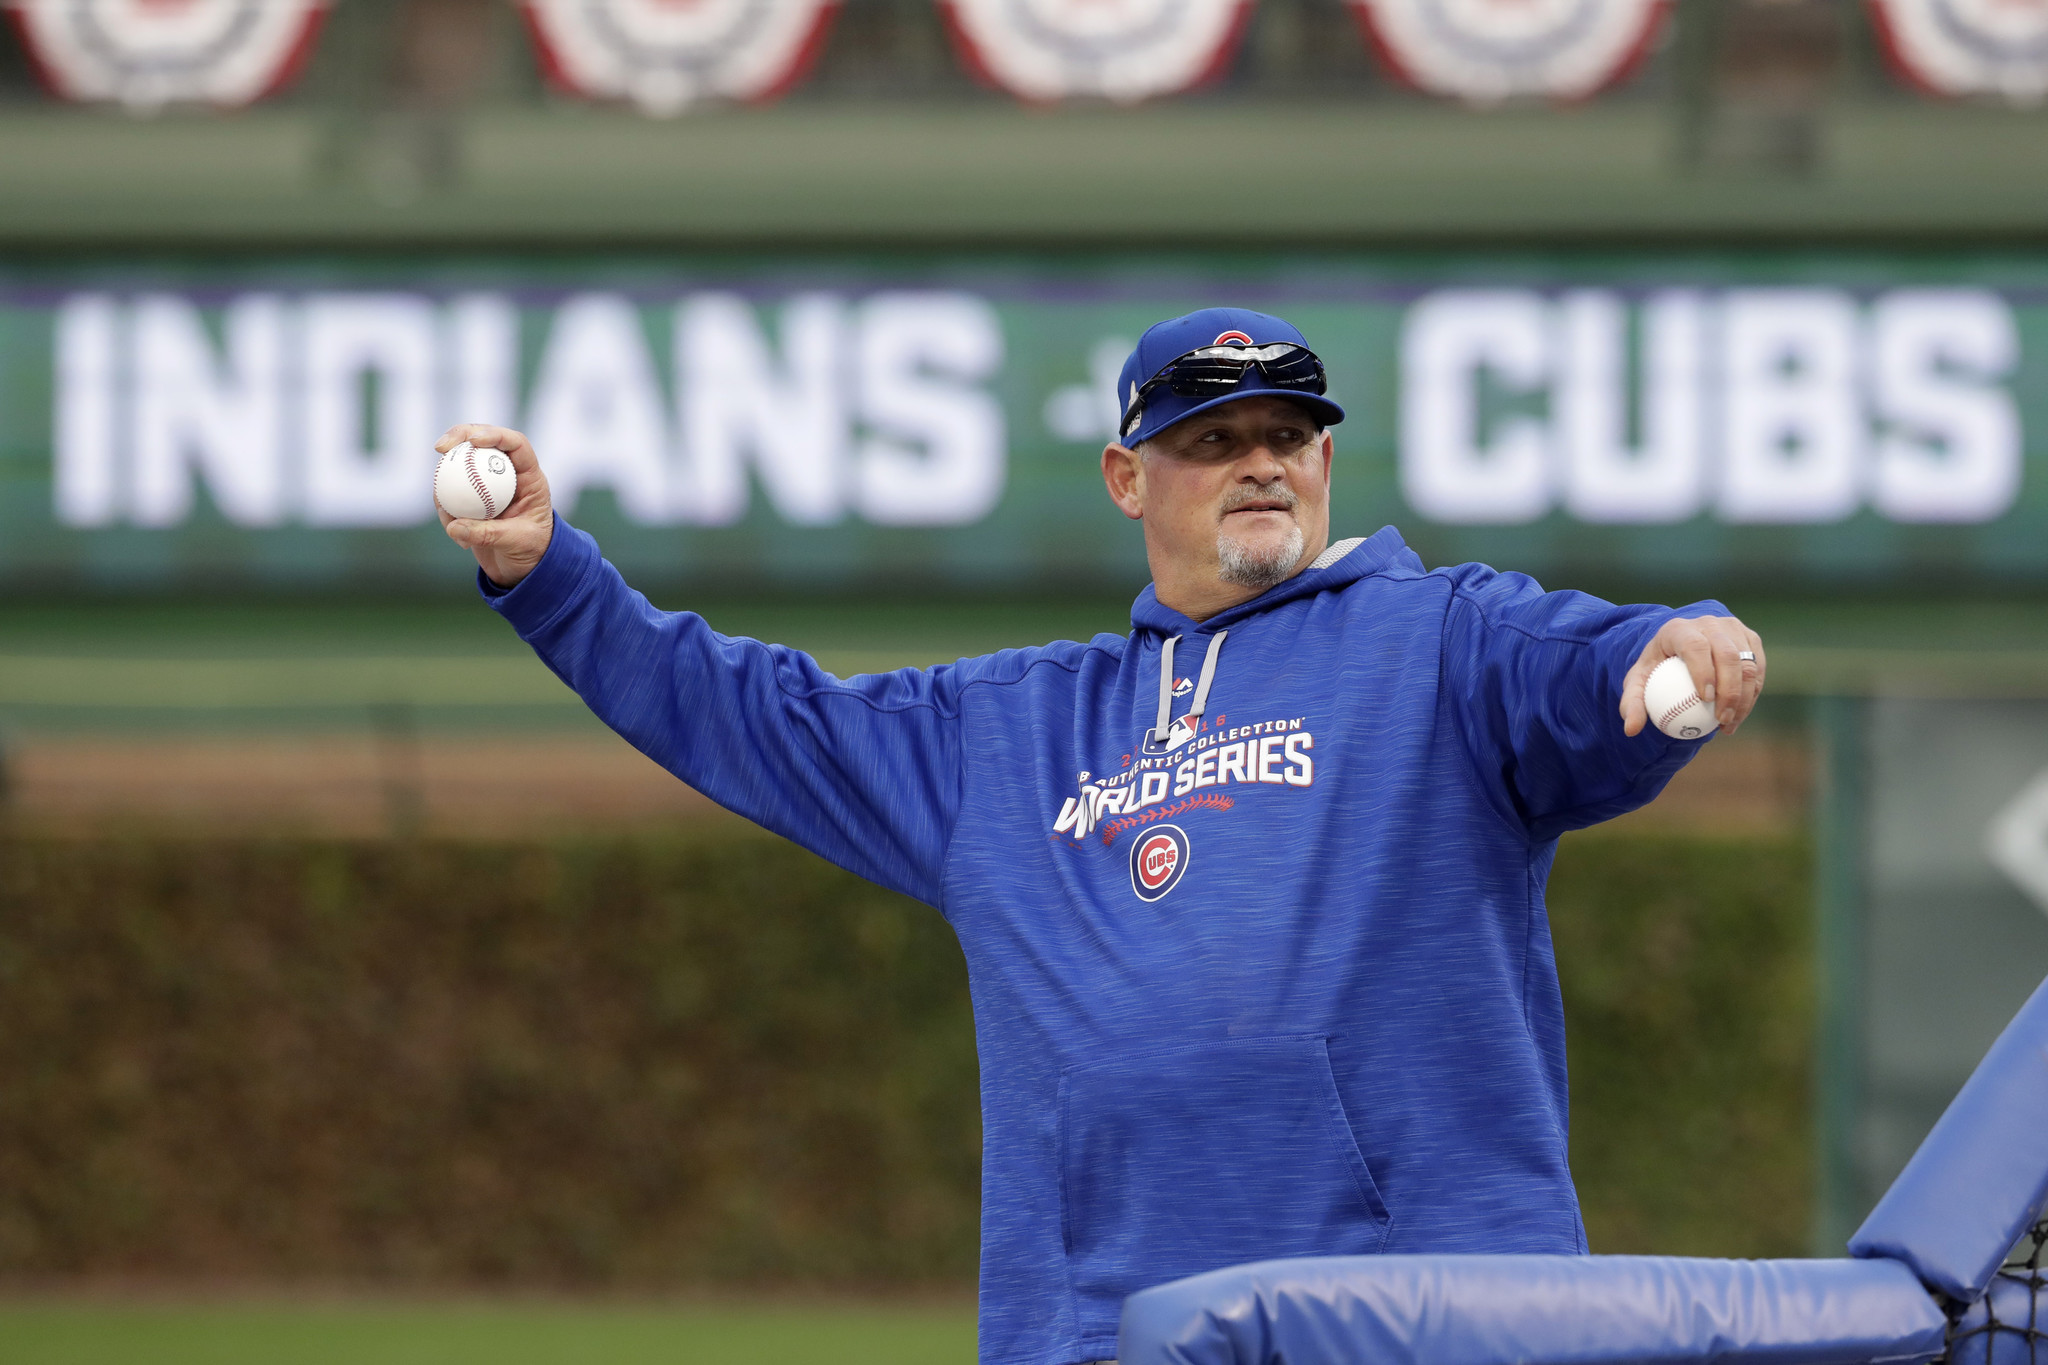 Ct-cubs-chris-bosio-bullpen-spt-0118-20170117